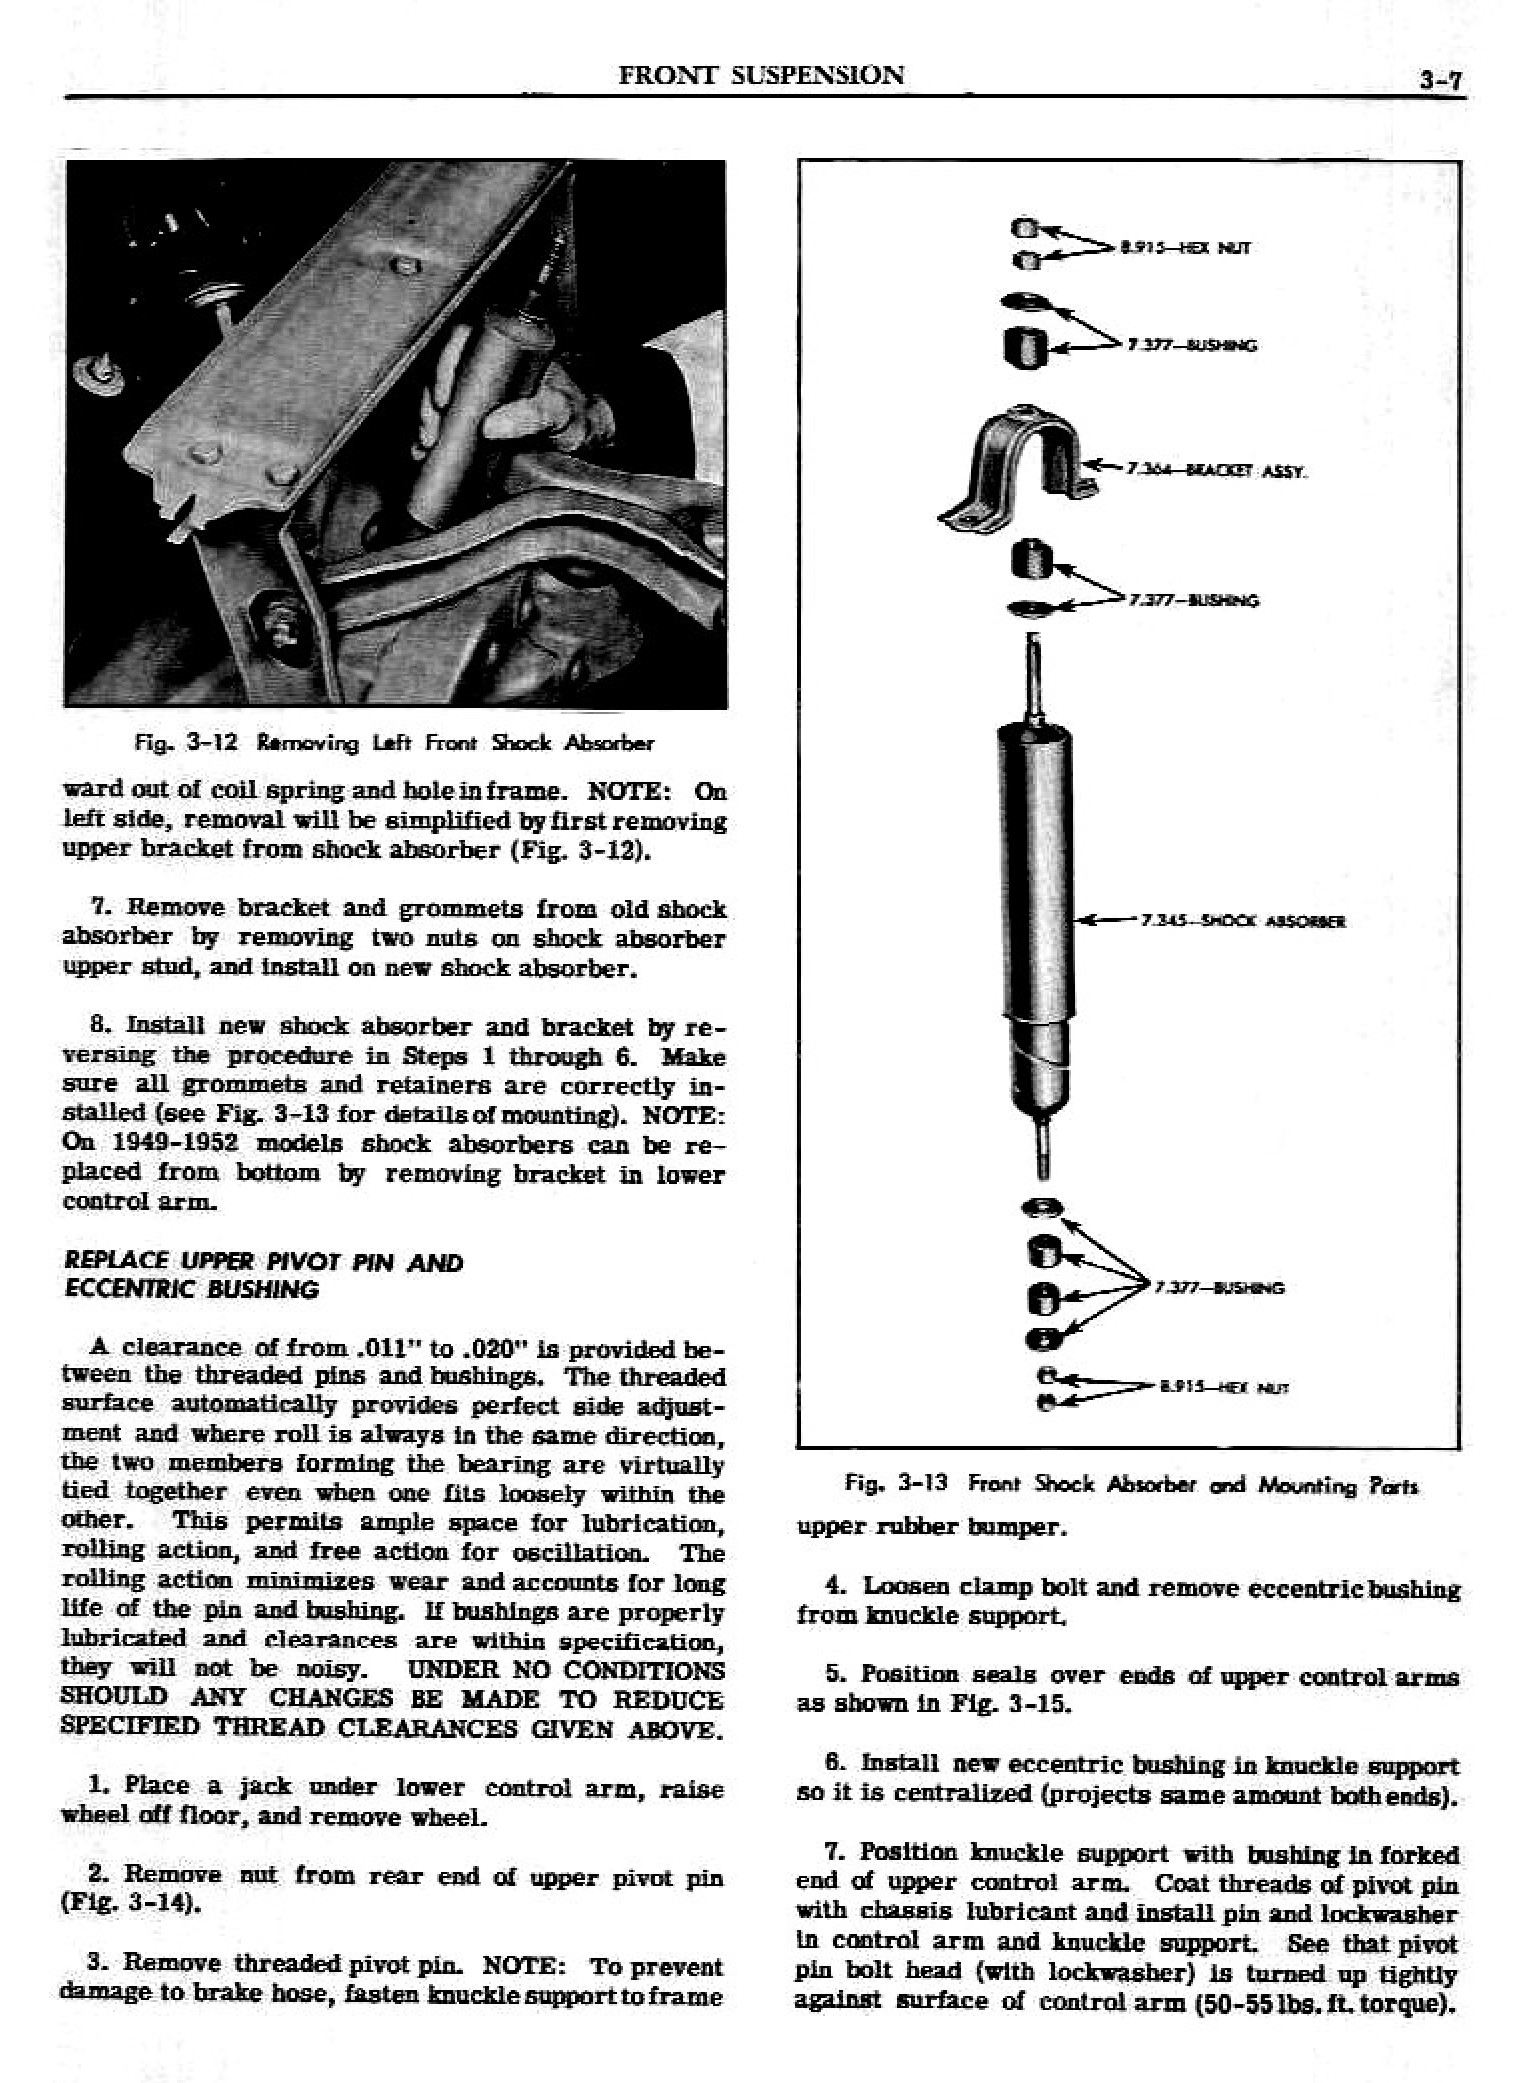 1949 Pontiac Shop Manual- Front Suspension Page 7 of 18